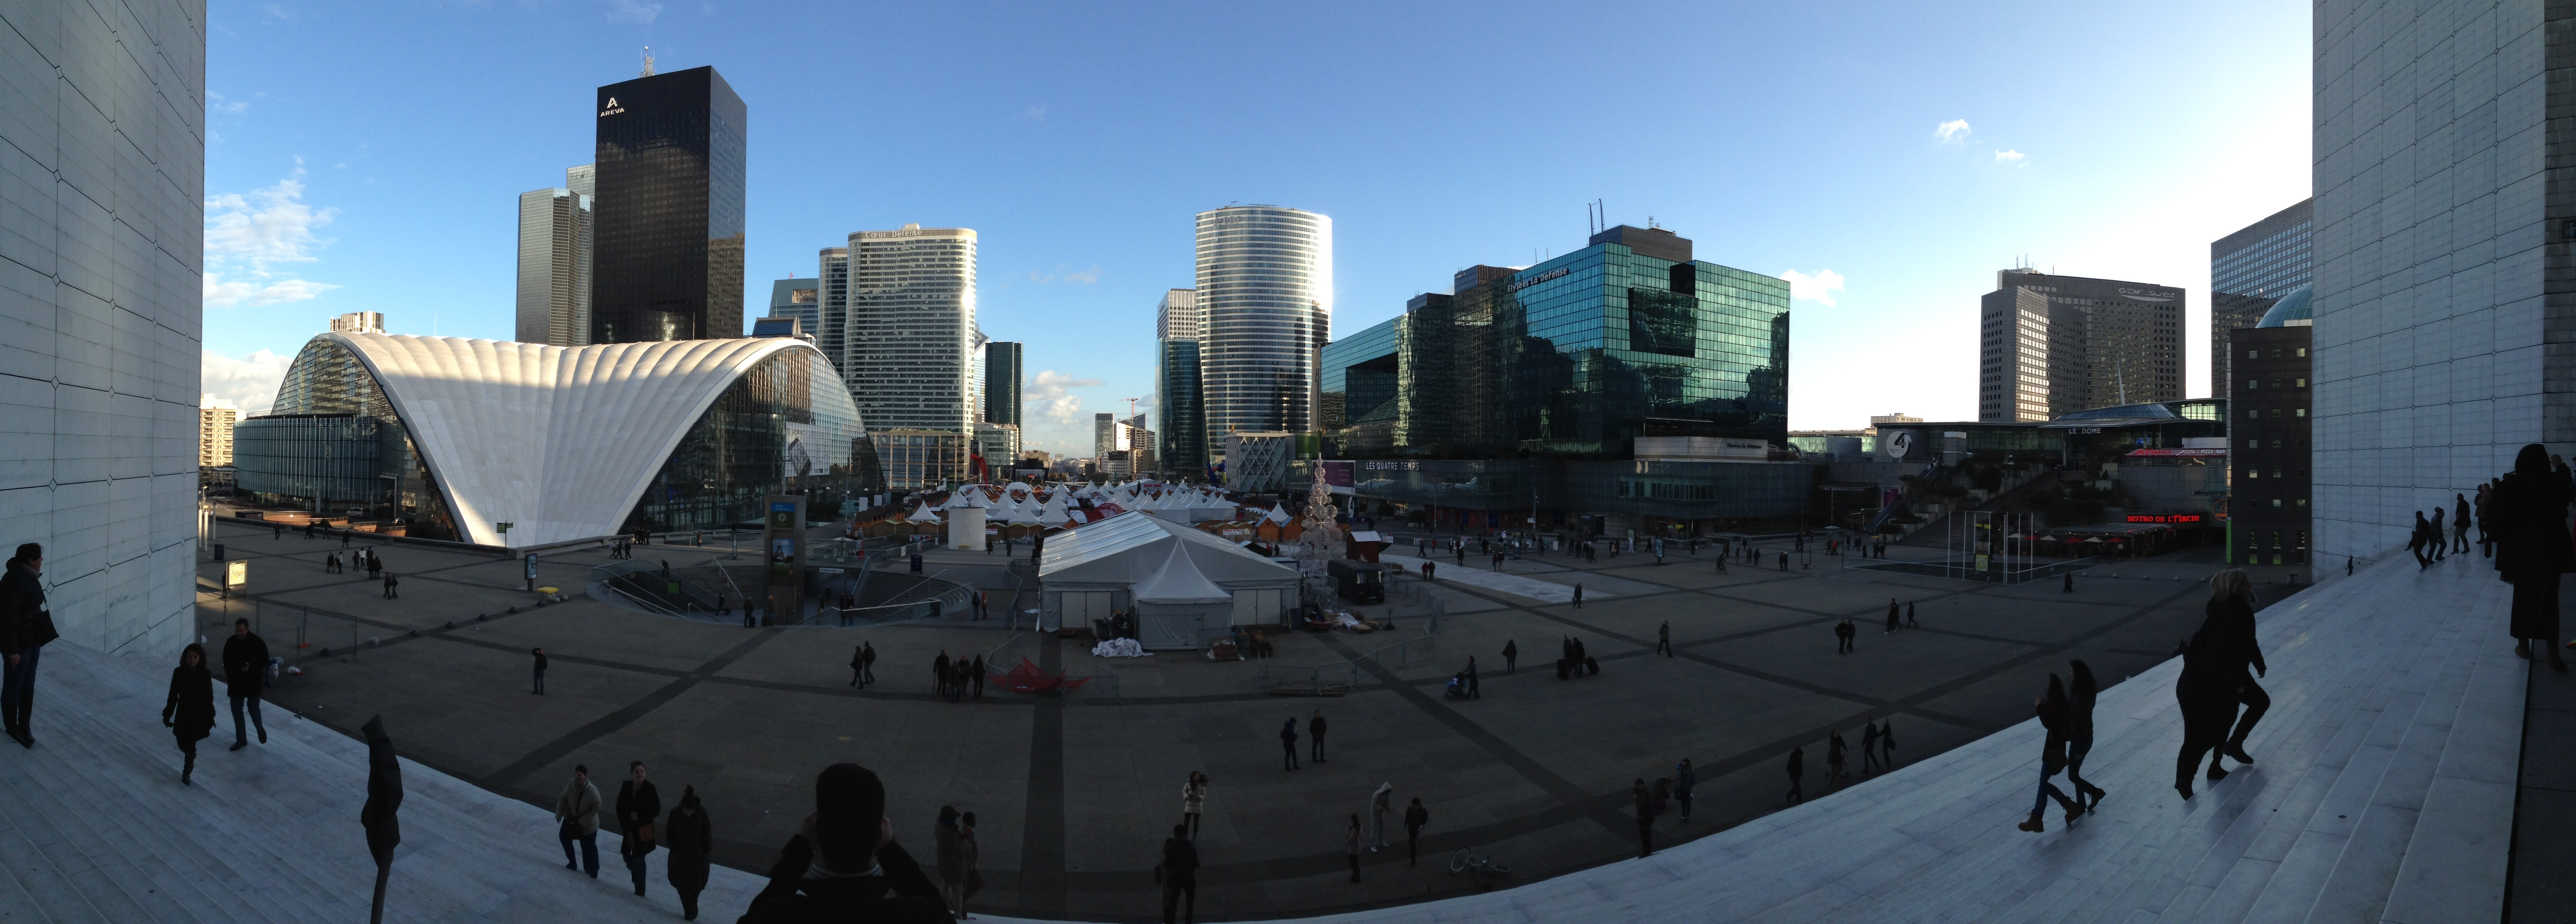 foto panoramica la defense parigi